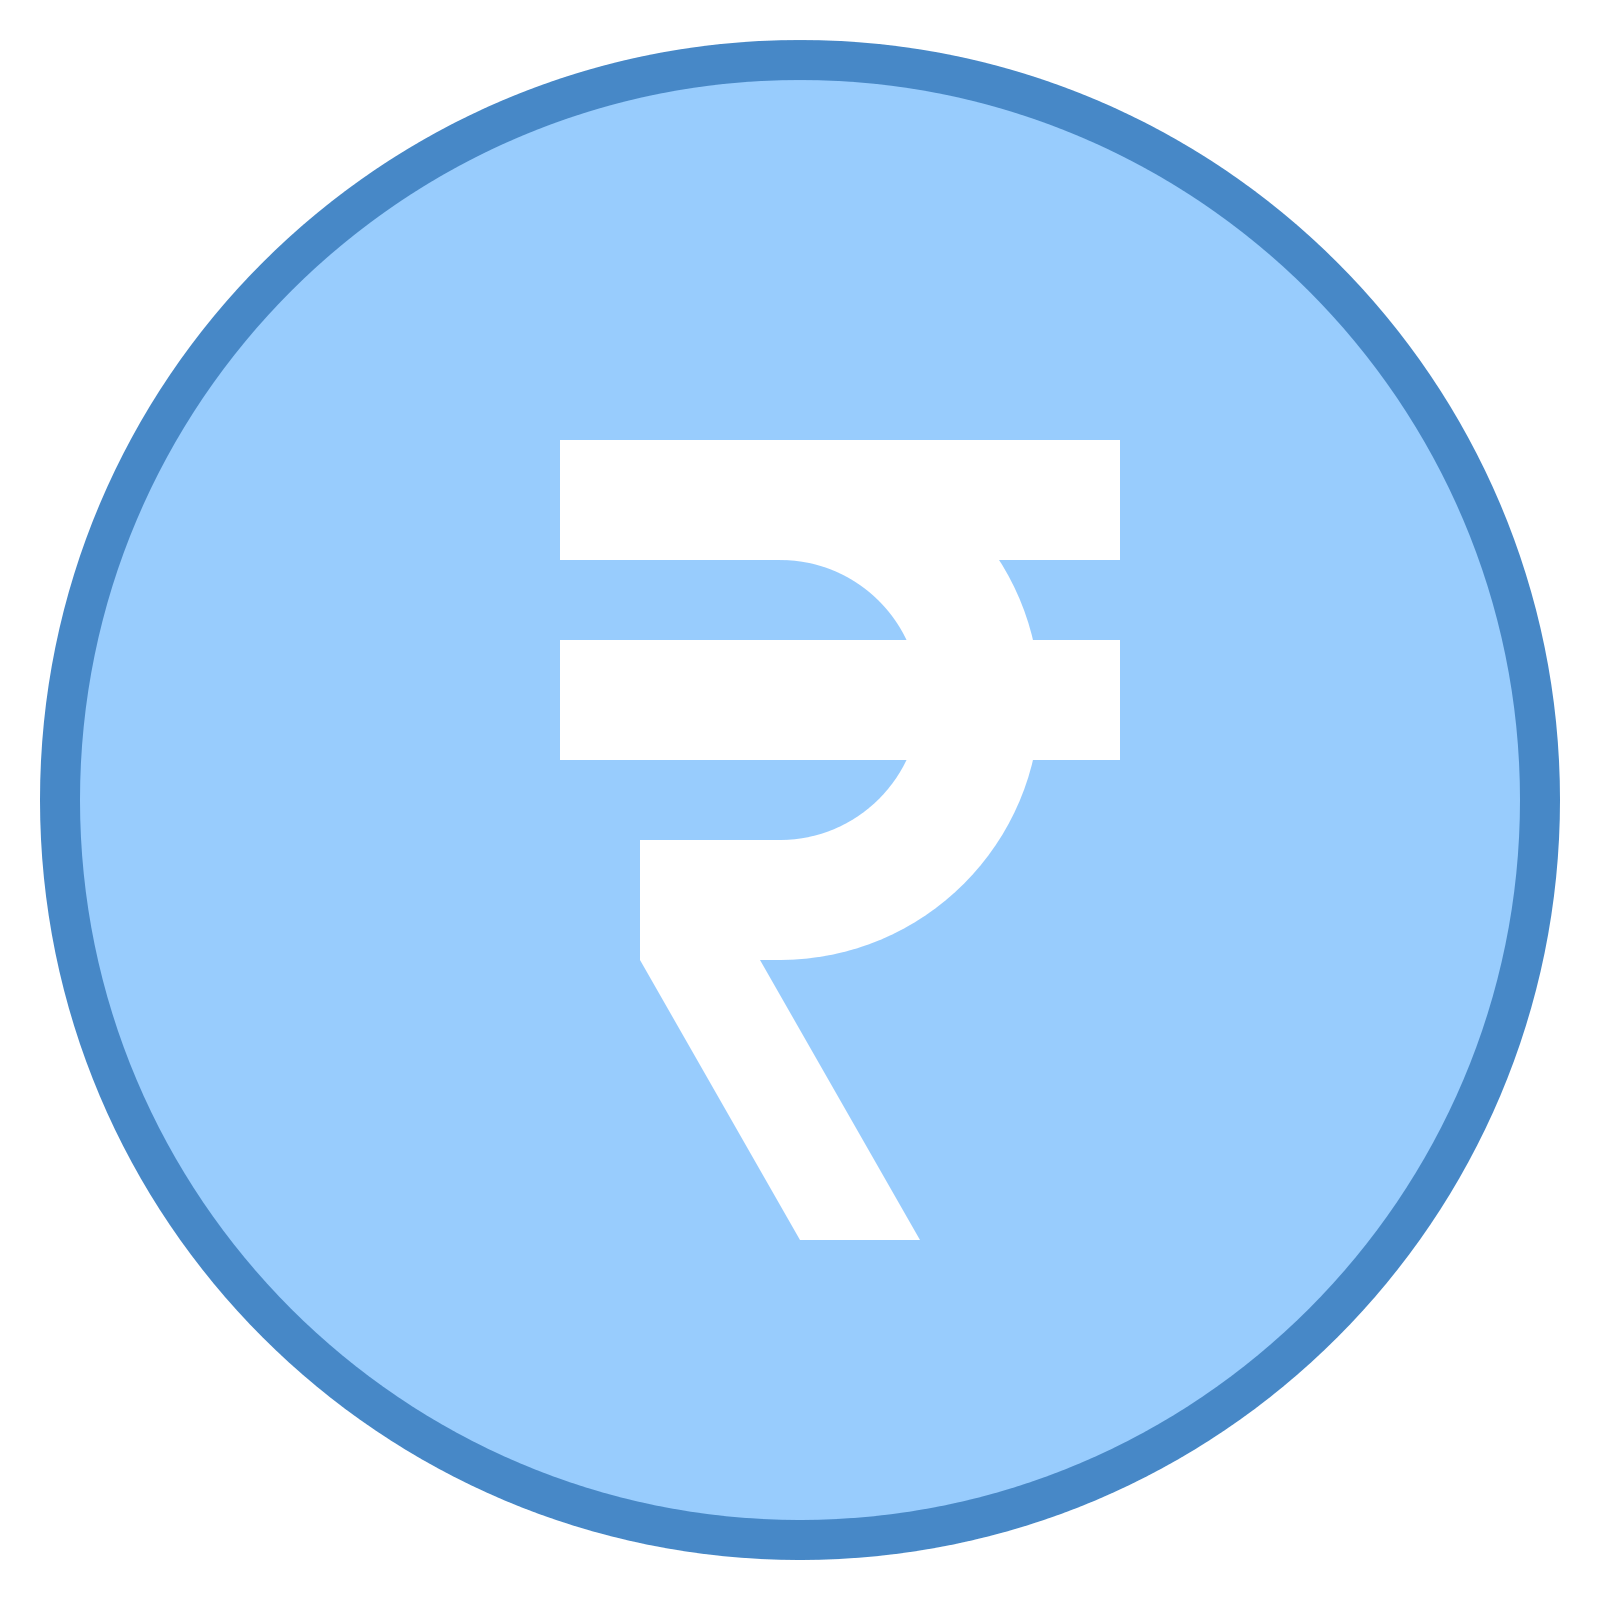 Display currency in indian rupee format with rupee symbol buycottarizona